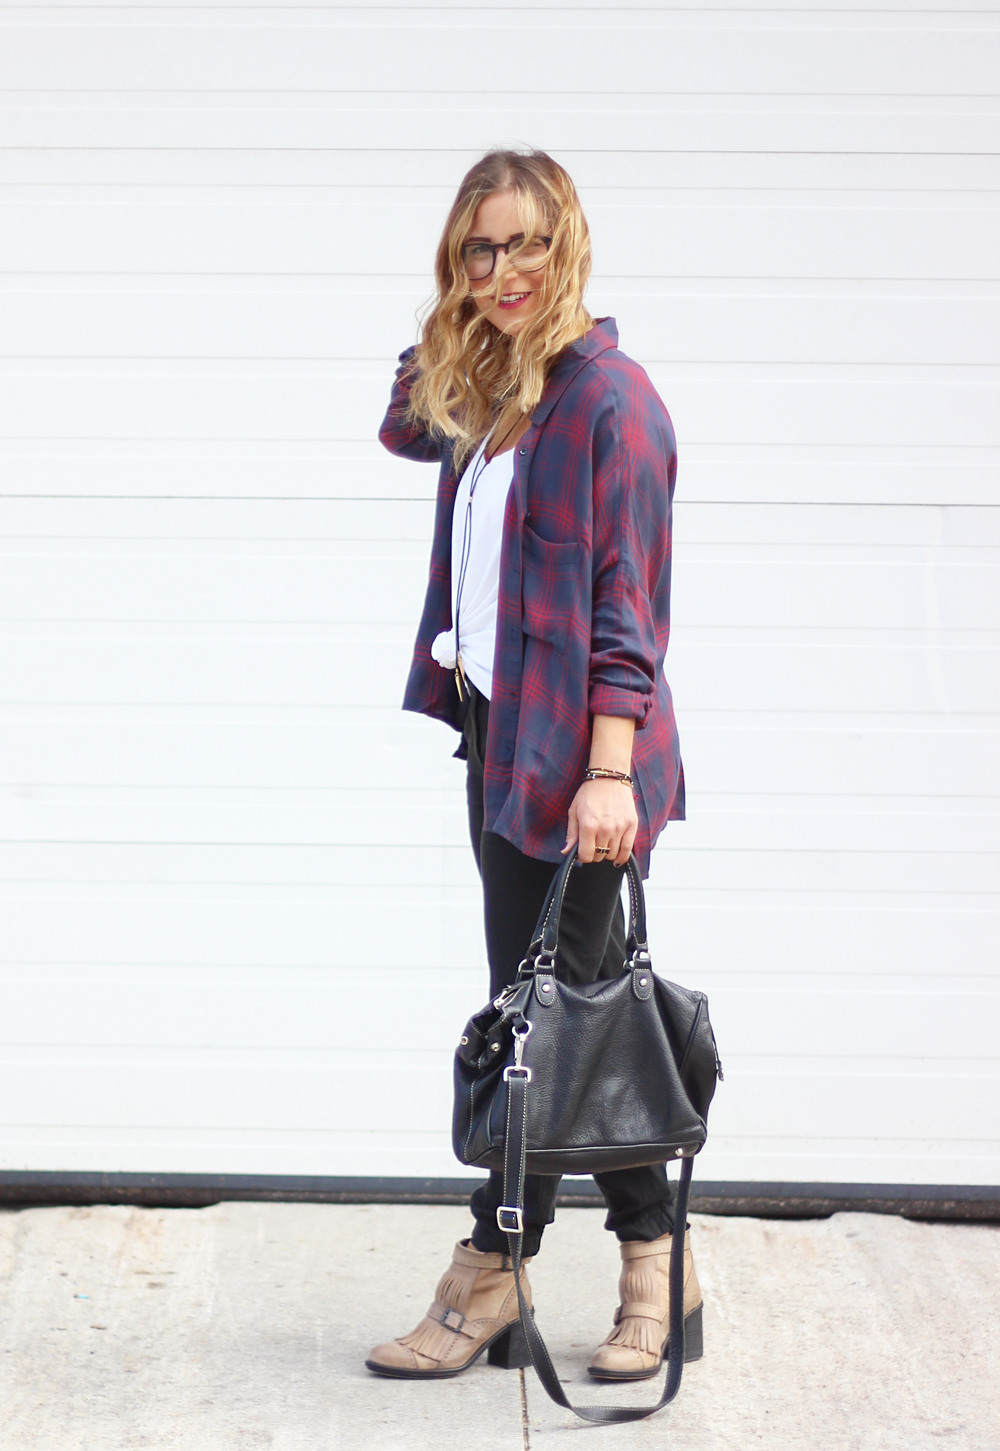 Fall outfit idea: How to wear an oversized flannel top and still look stylish